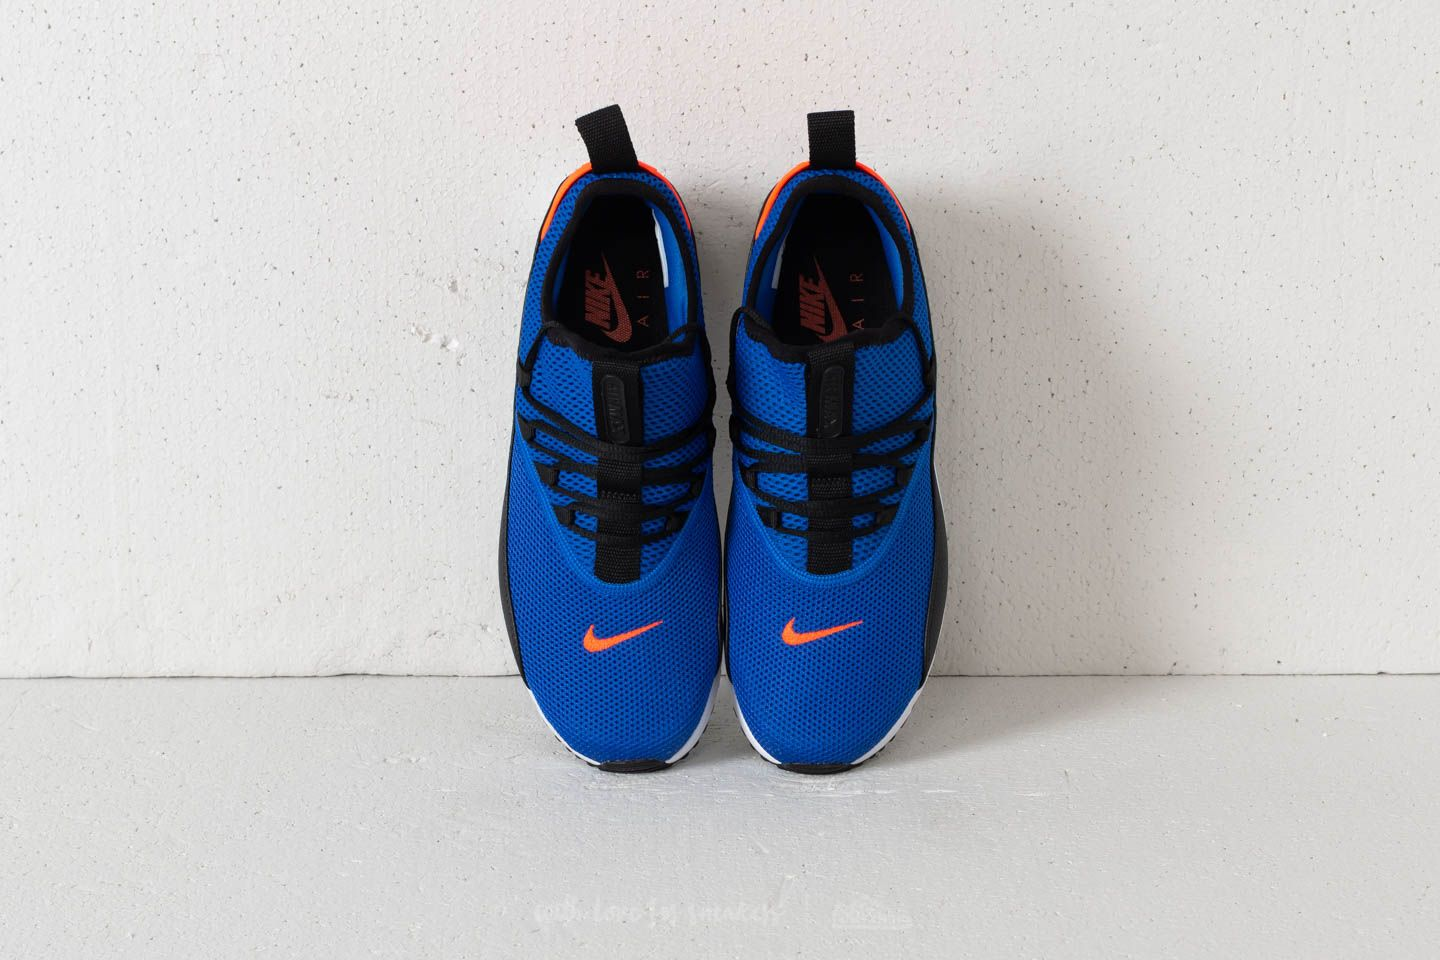 Nike Air Max 90 EZ Racer Blue Total Crimson Black | Footshop